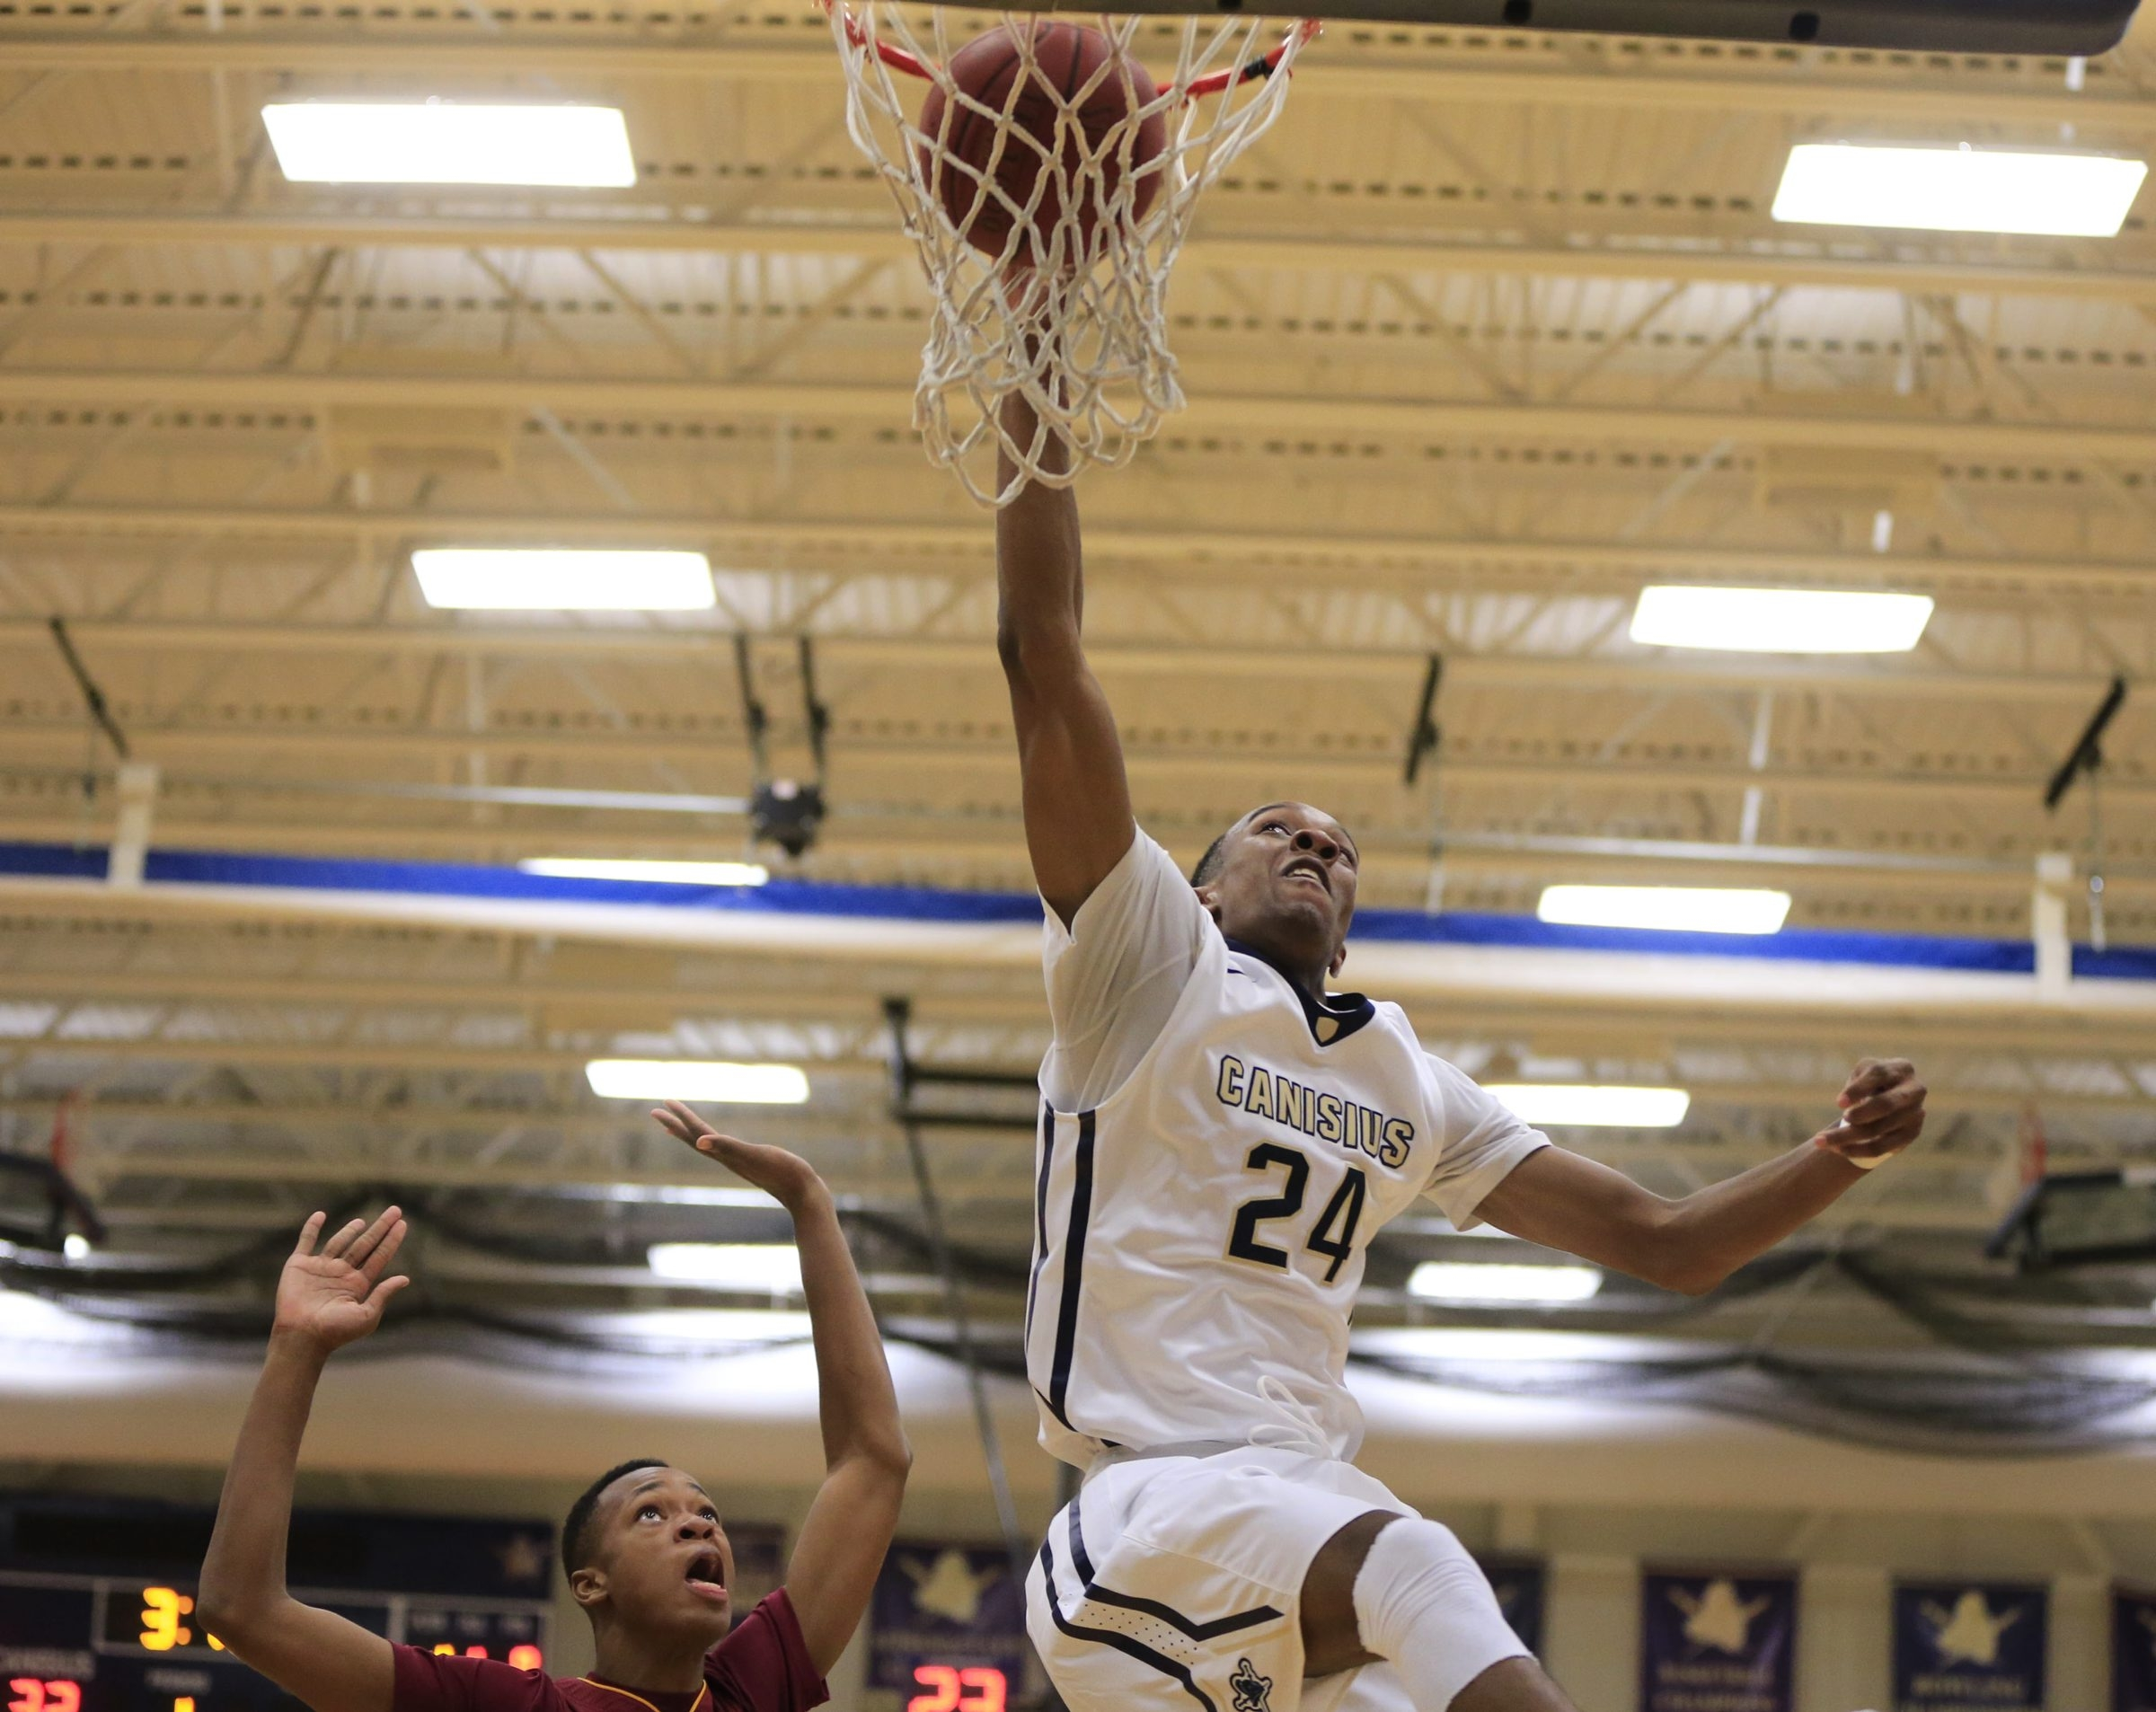 Canisius's Stafford Trueheart dunks against Nazareth during the first half of a first round game in the Keenan Classic on Friday, Dec. 11, 2015. (Harry Scull Jr./Buffalo News)